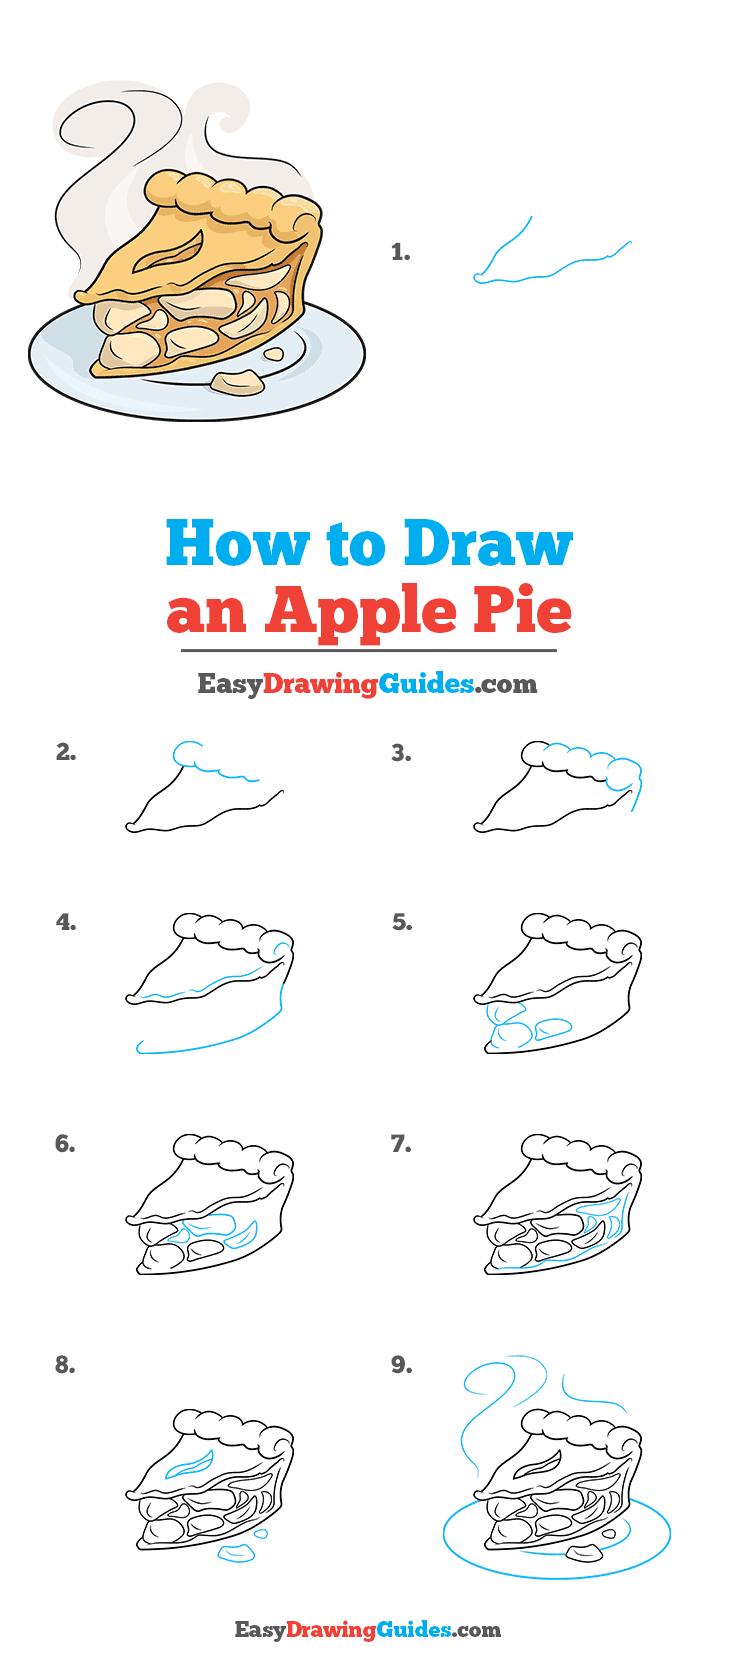 How to Draw an Apple Pie Step by Step Tutorial Image